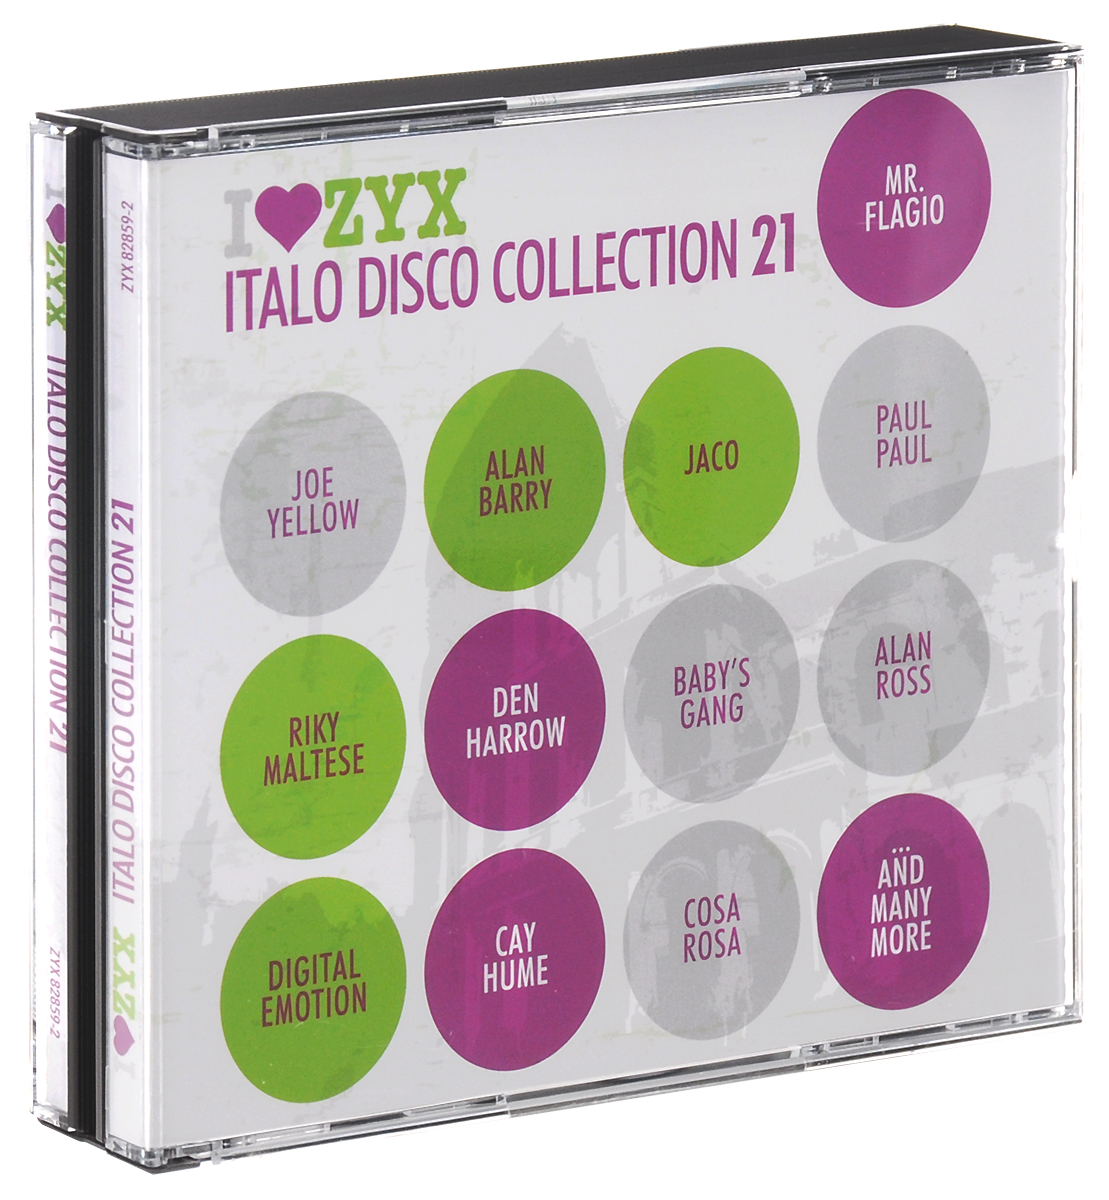 Флагио Мистер,Scotch,Дэн Хэрроу,Алан Барри Zyx Italo Disco Collection 21 (3 CD) михаель бедфорд клифф тернер майк мэрин пэтти райан solid strangers джо локвуд italo disco collection 3 3 cd